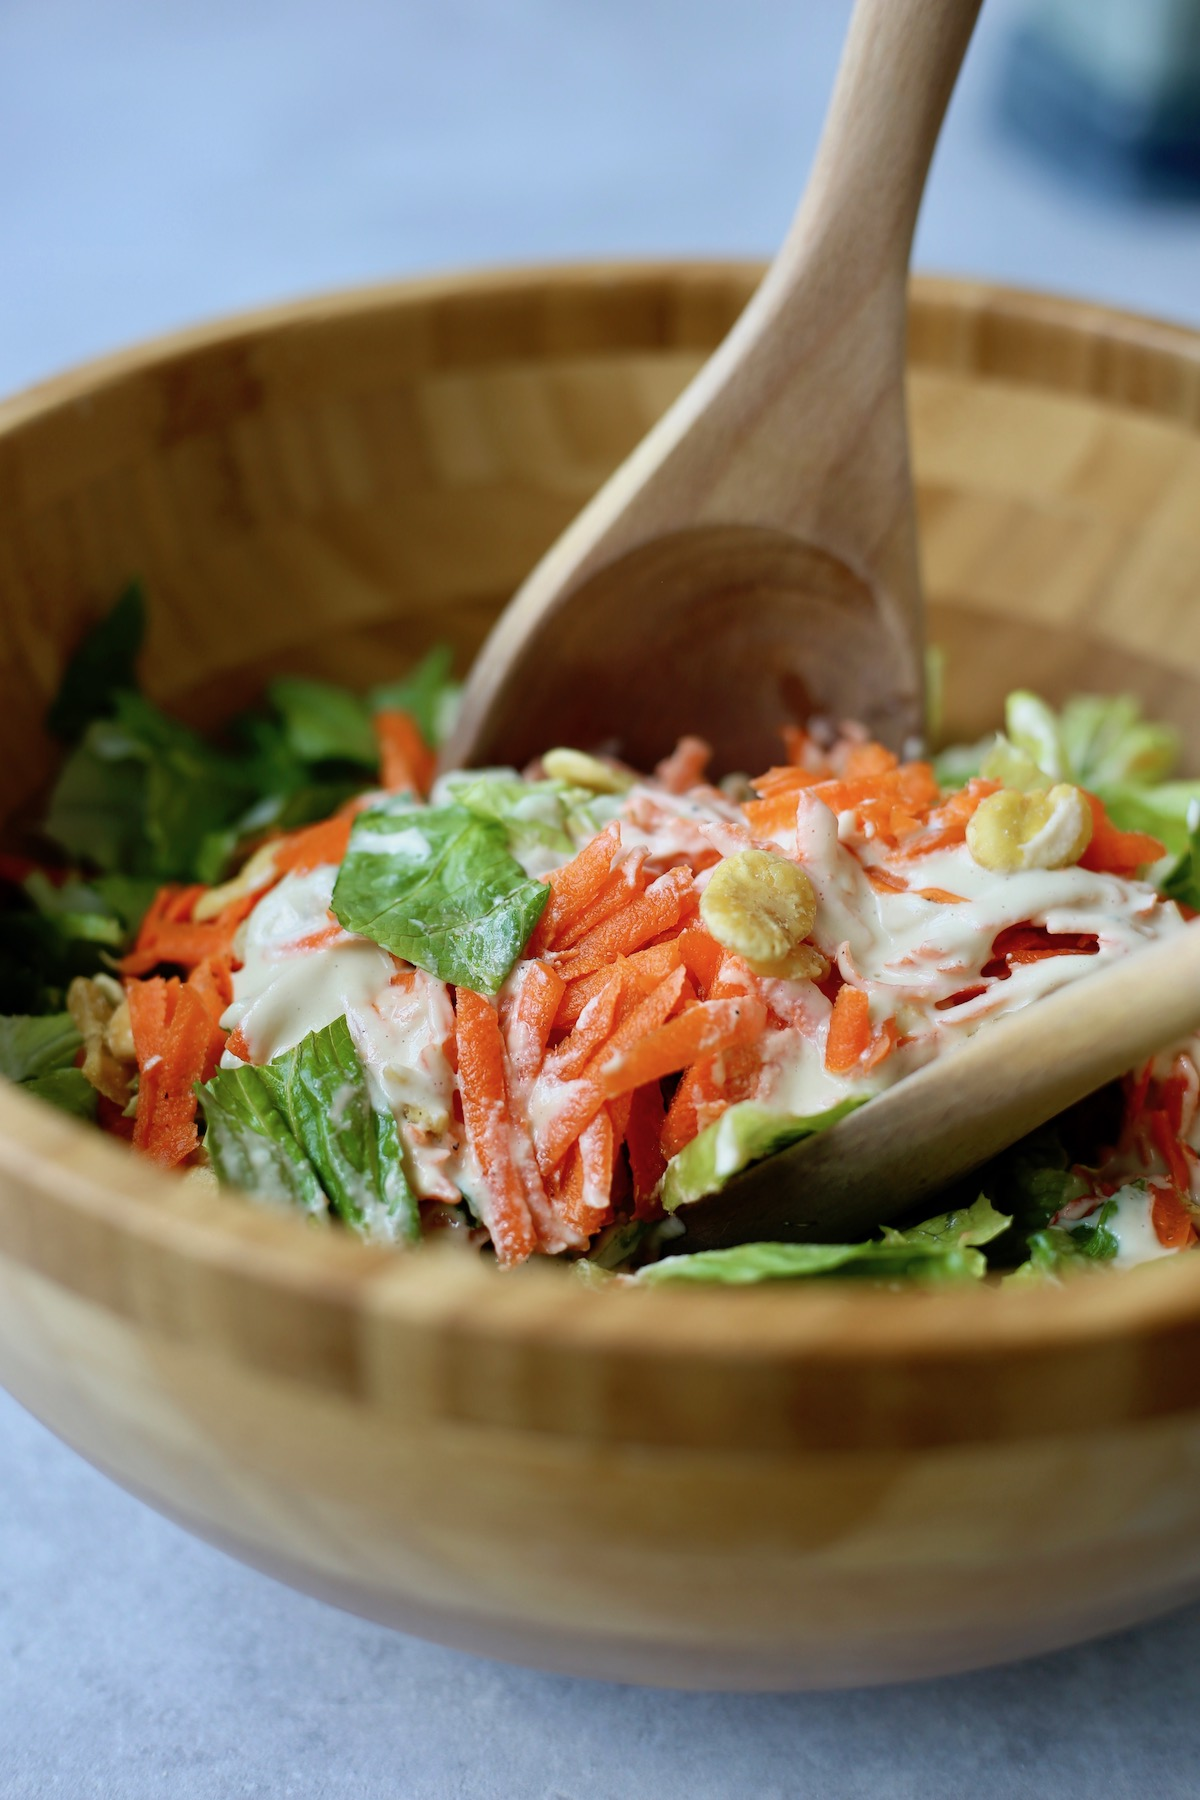 shredded carrots, romaine and vegan Caesar dressing being mixed together in a bowl